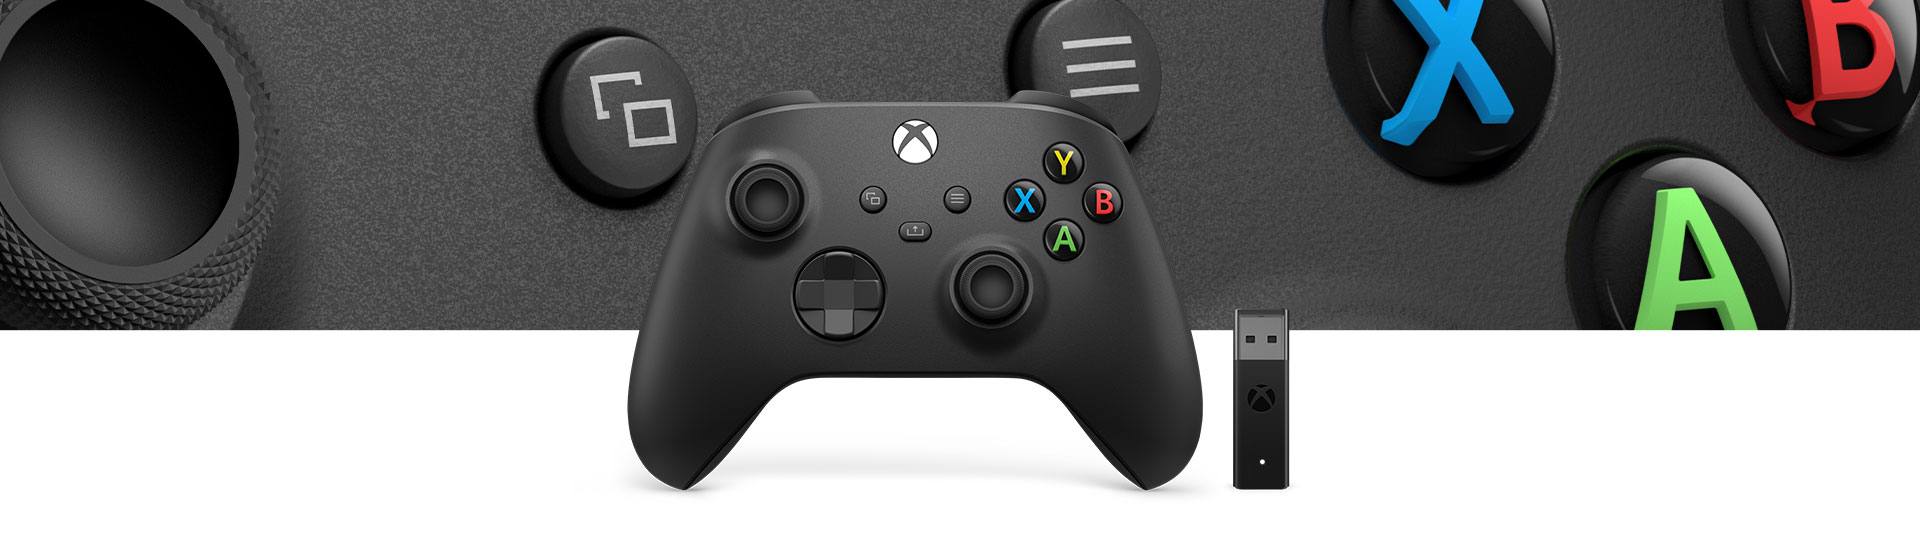 Xbox Wireless Controller + Wireless Adapter for Windows 10 with a close-up of controller surface texture